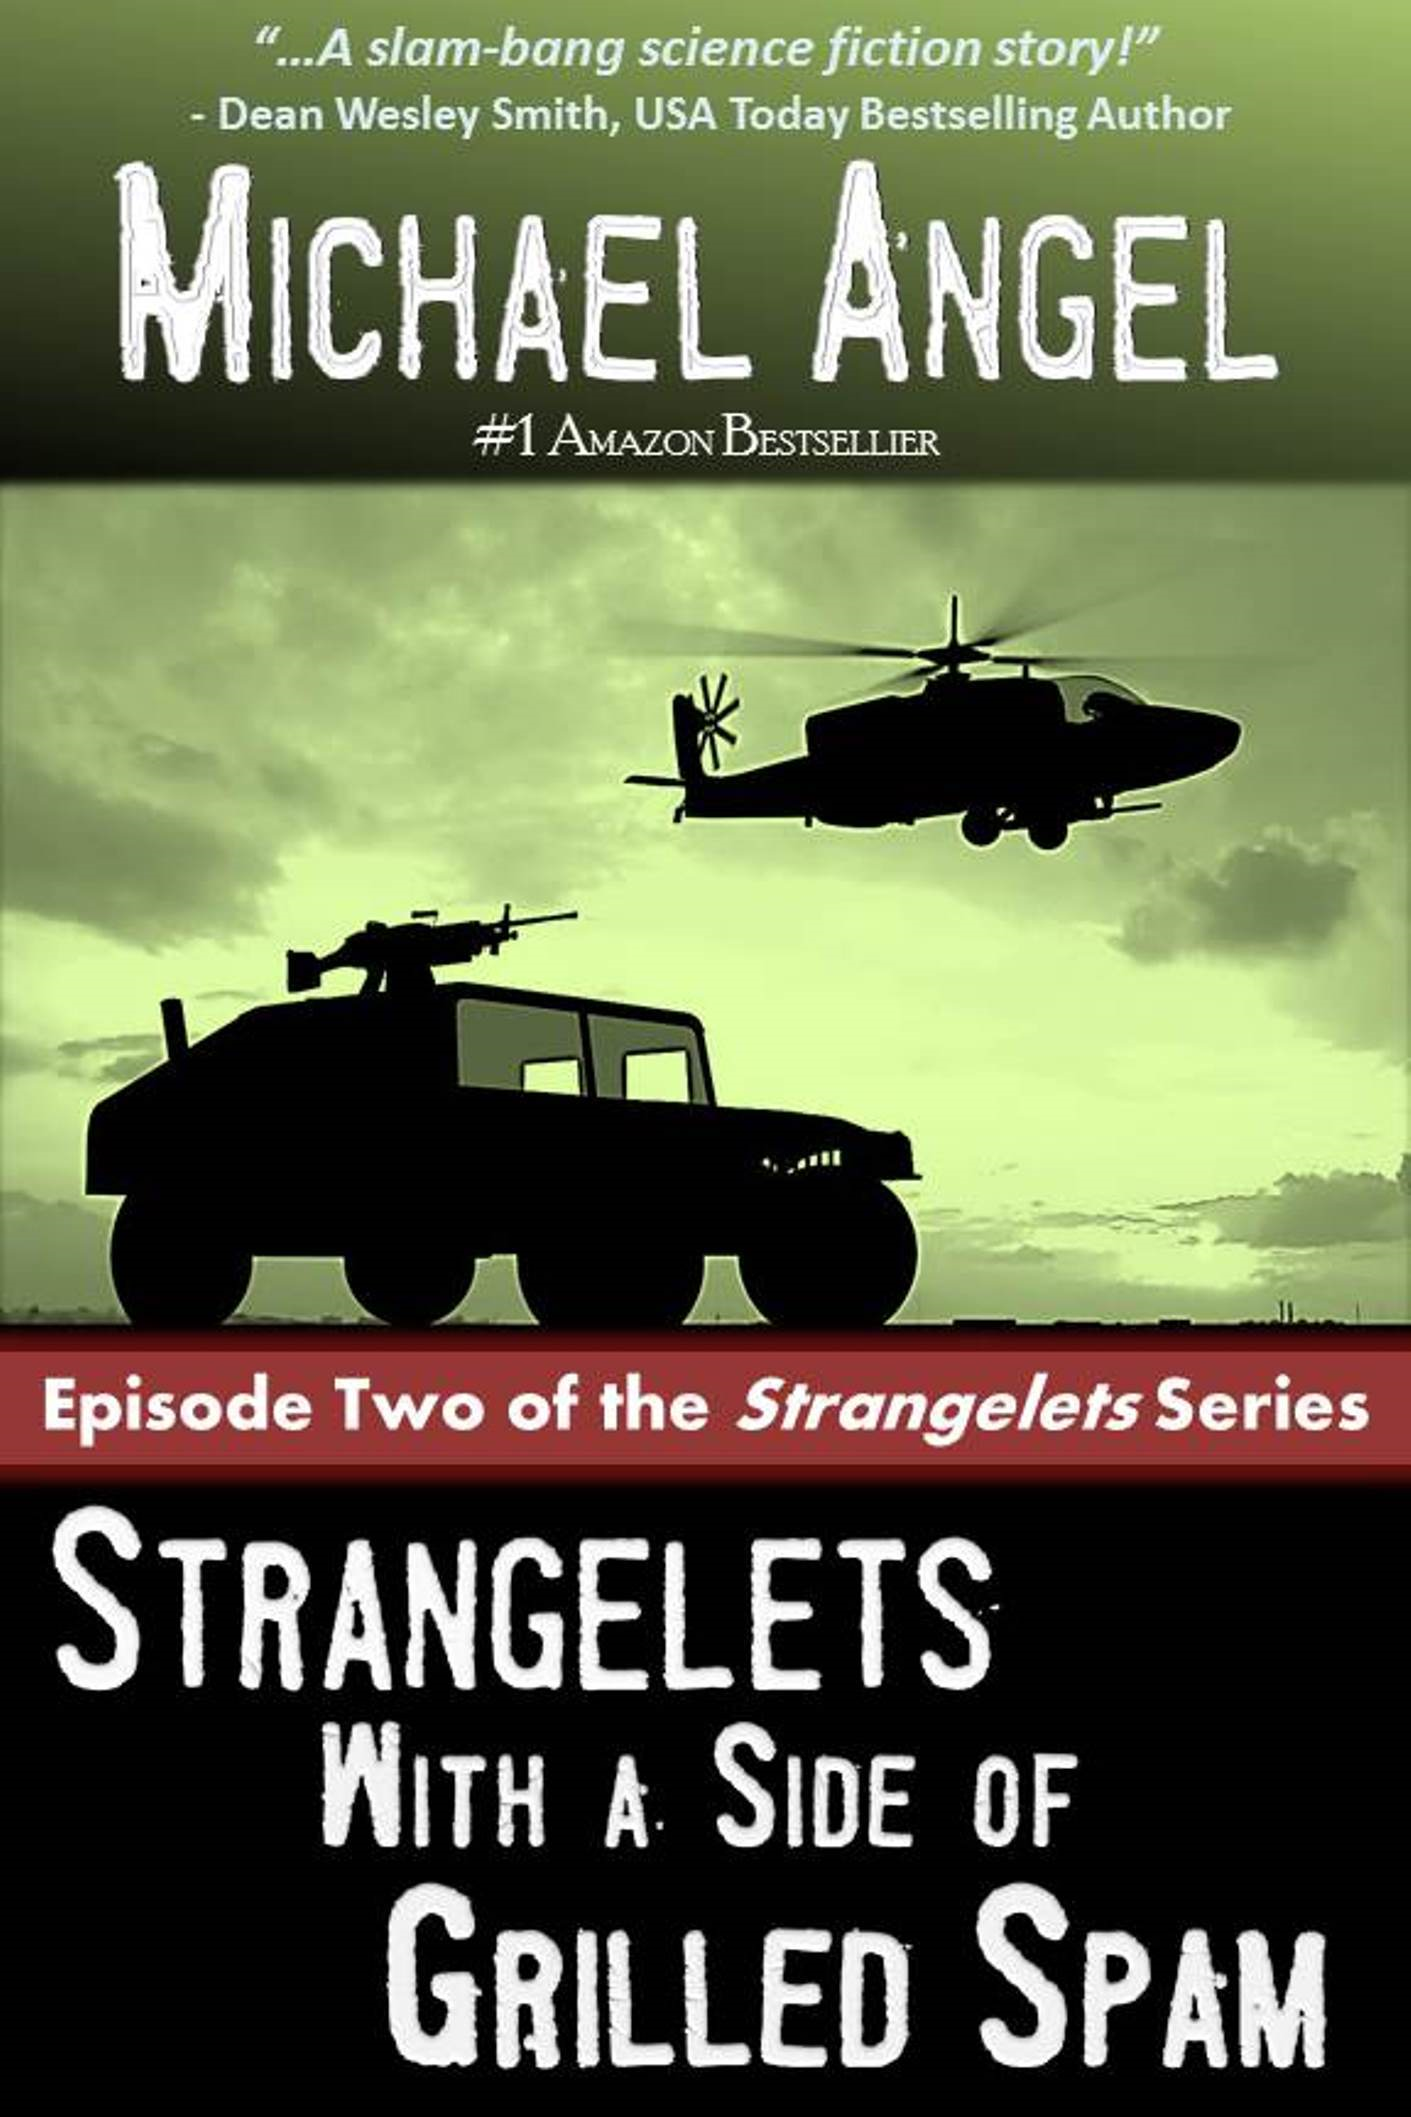 Strangelets with a Side of Grilled Spam: Episode Two